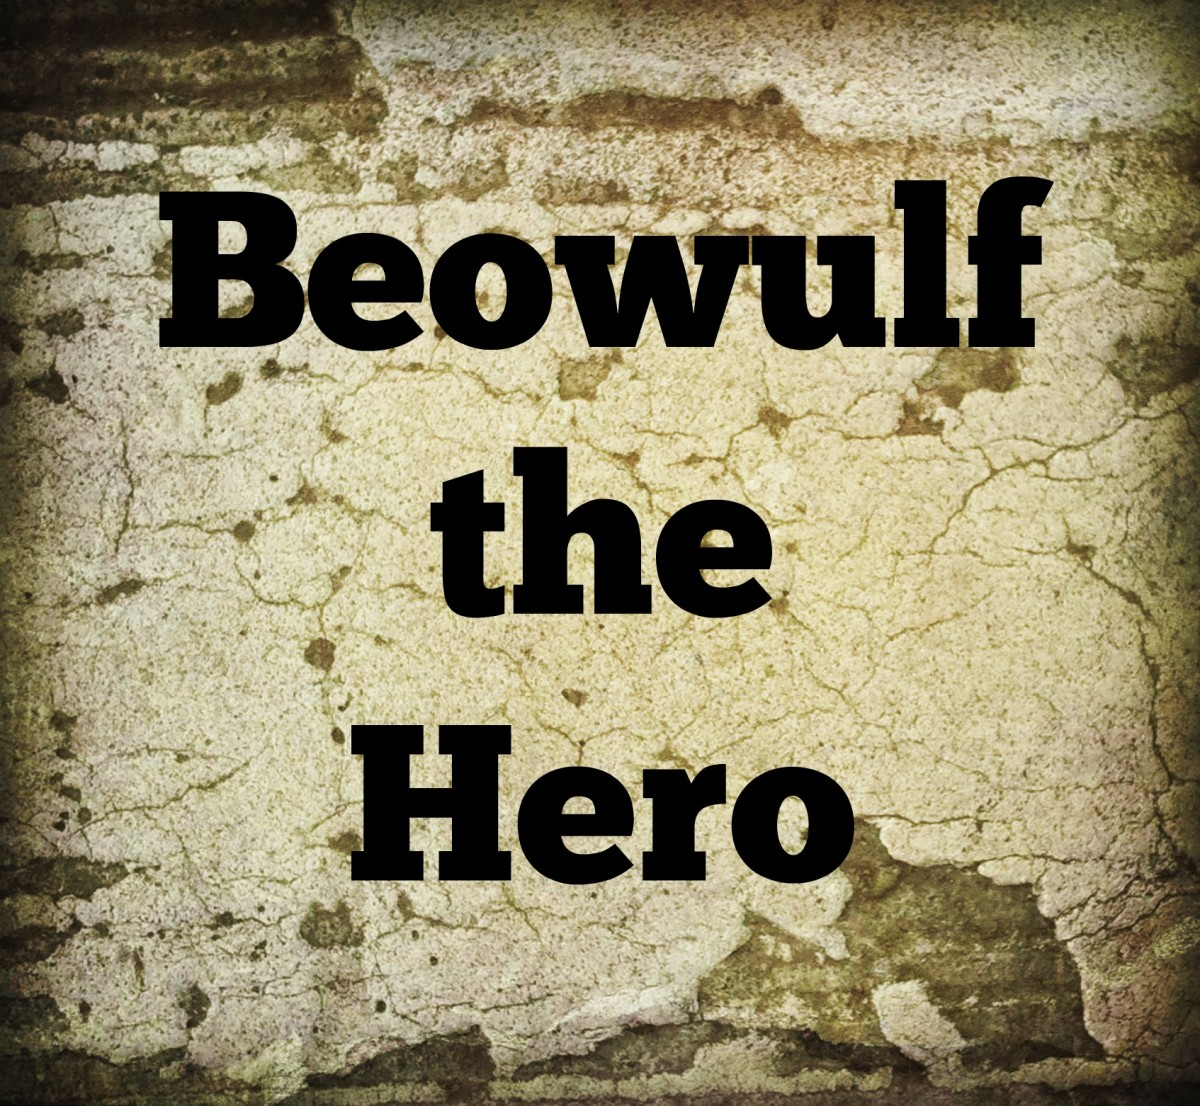 why god and beowulf are heroes Get an answer for 'what are important characteristics within beowulf that make beowulf an epic hero' and find homework help for other beowulf questions at enotes.